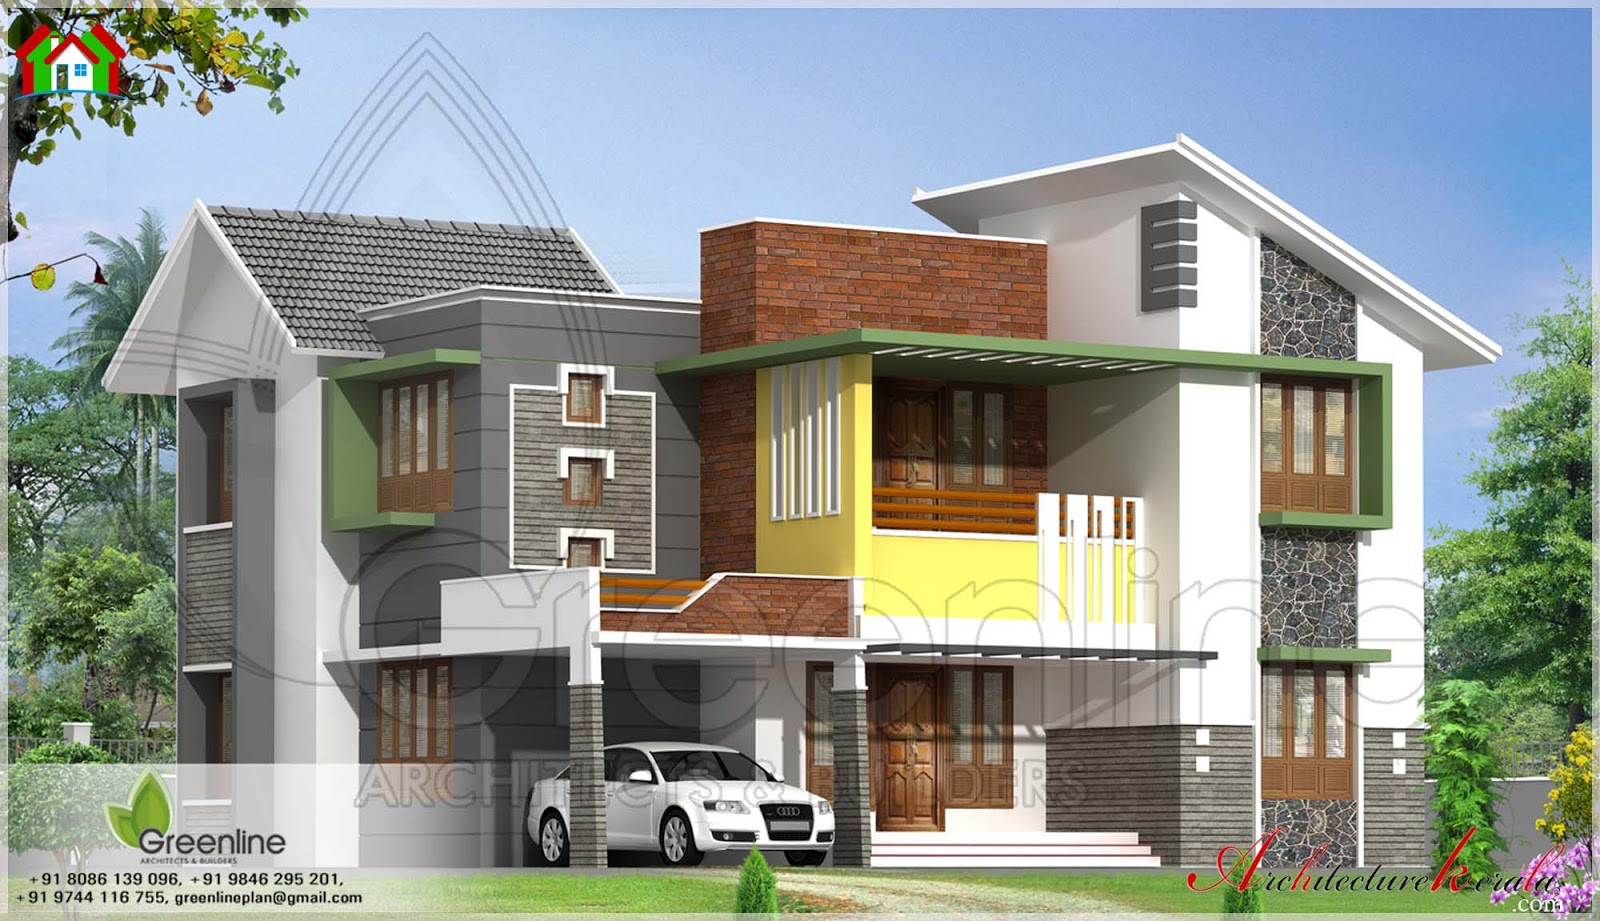 Modern style house elevation architecture kerala for House elevation photos architecture